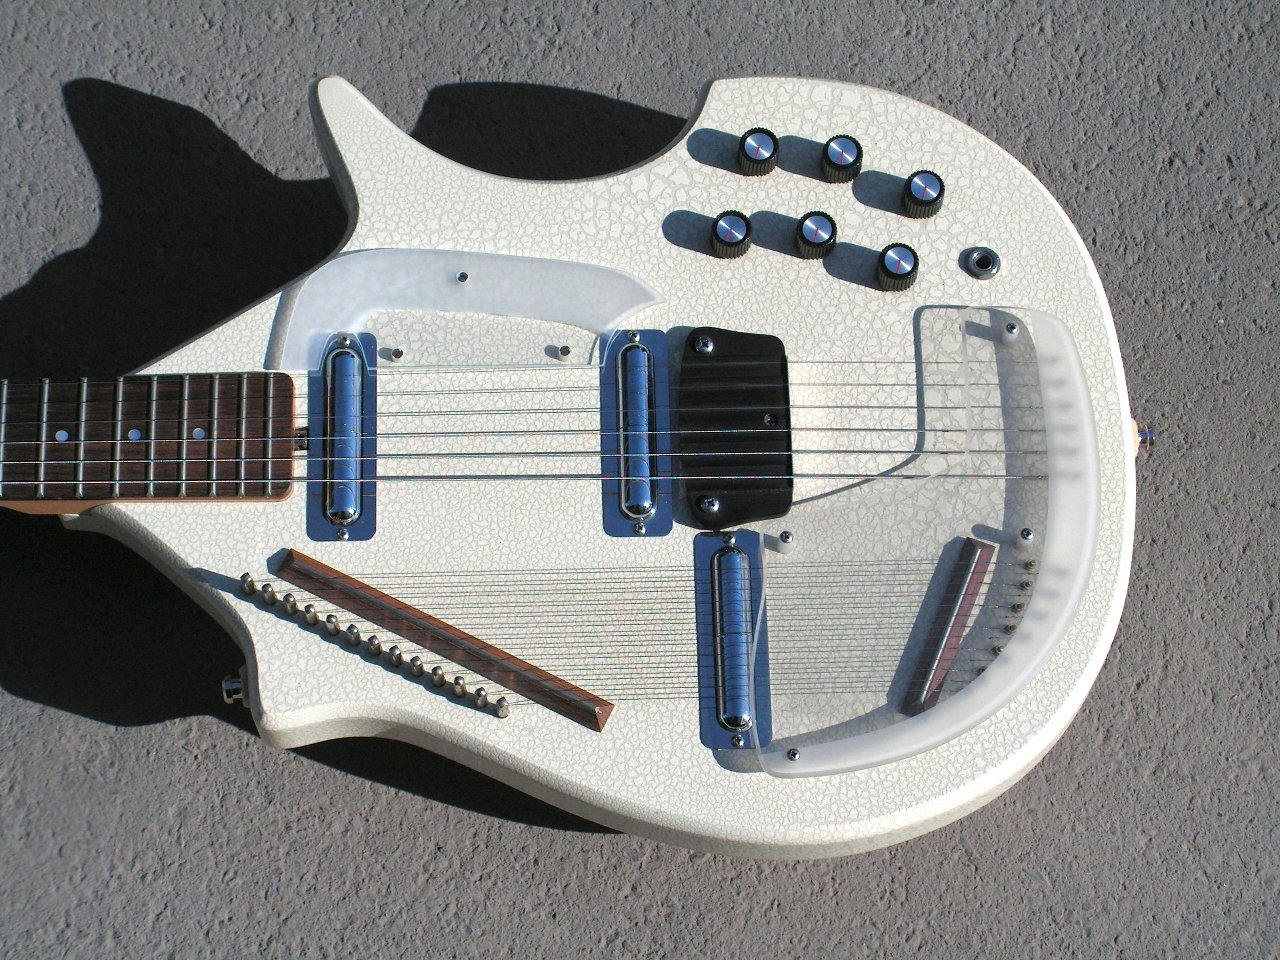 jerry jones master sitar 2000 white body.jpg